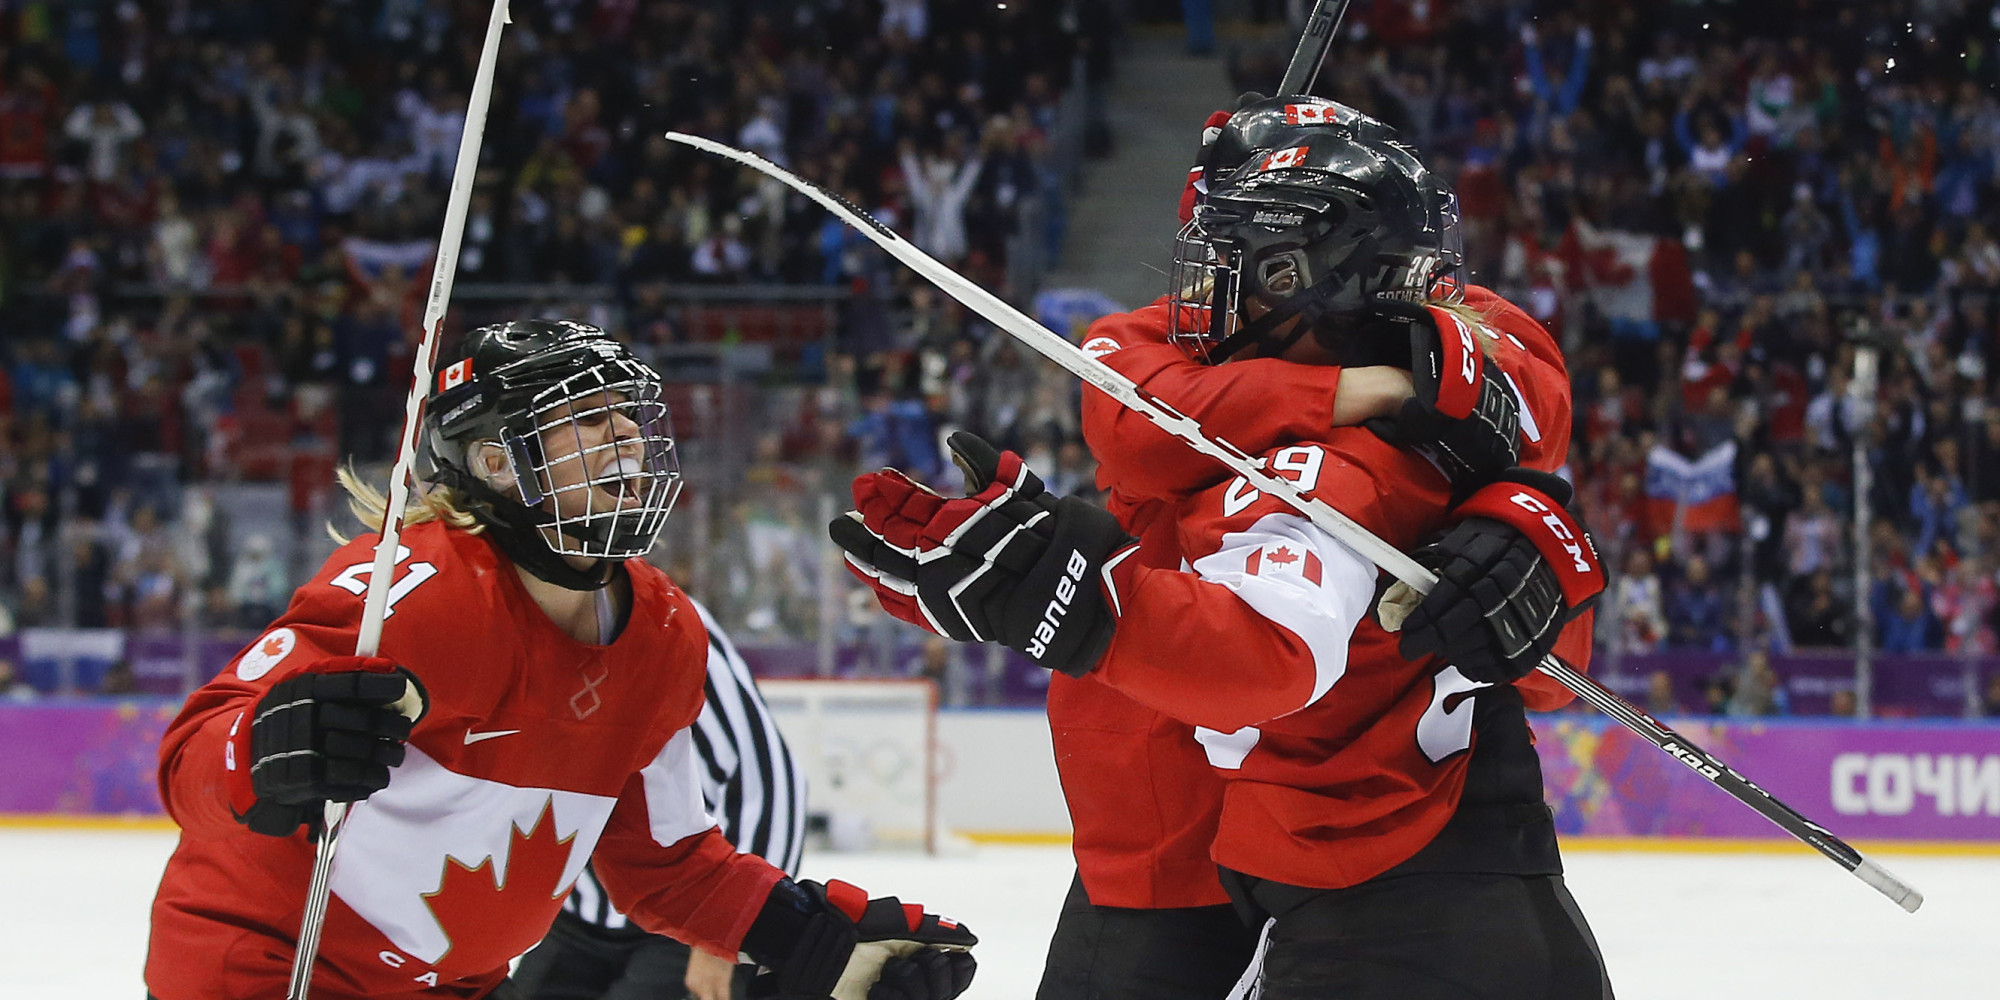 Haley Irwin of Canada (21) celebrates with teammates Marie-Philip Poulin (29) and Meghan Agosta-Marciano (2) after Poulin scored the tying goal against the USA during the third period of the women's gold medal ice hockey game at the 2014 Winter Olympics, Thursday, Feb. 20, 2014, in Sochi, Russia. (AP Photo/Matt Slocum)